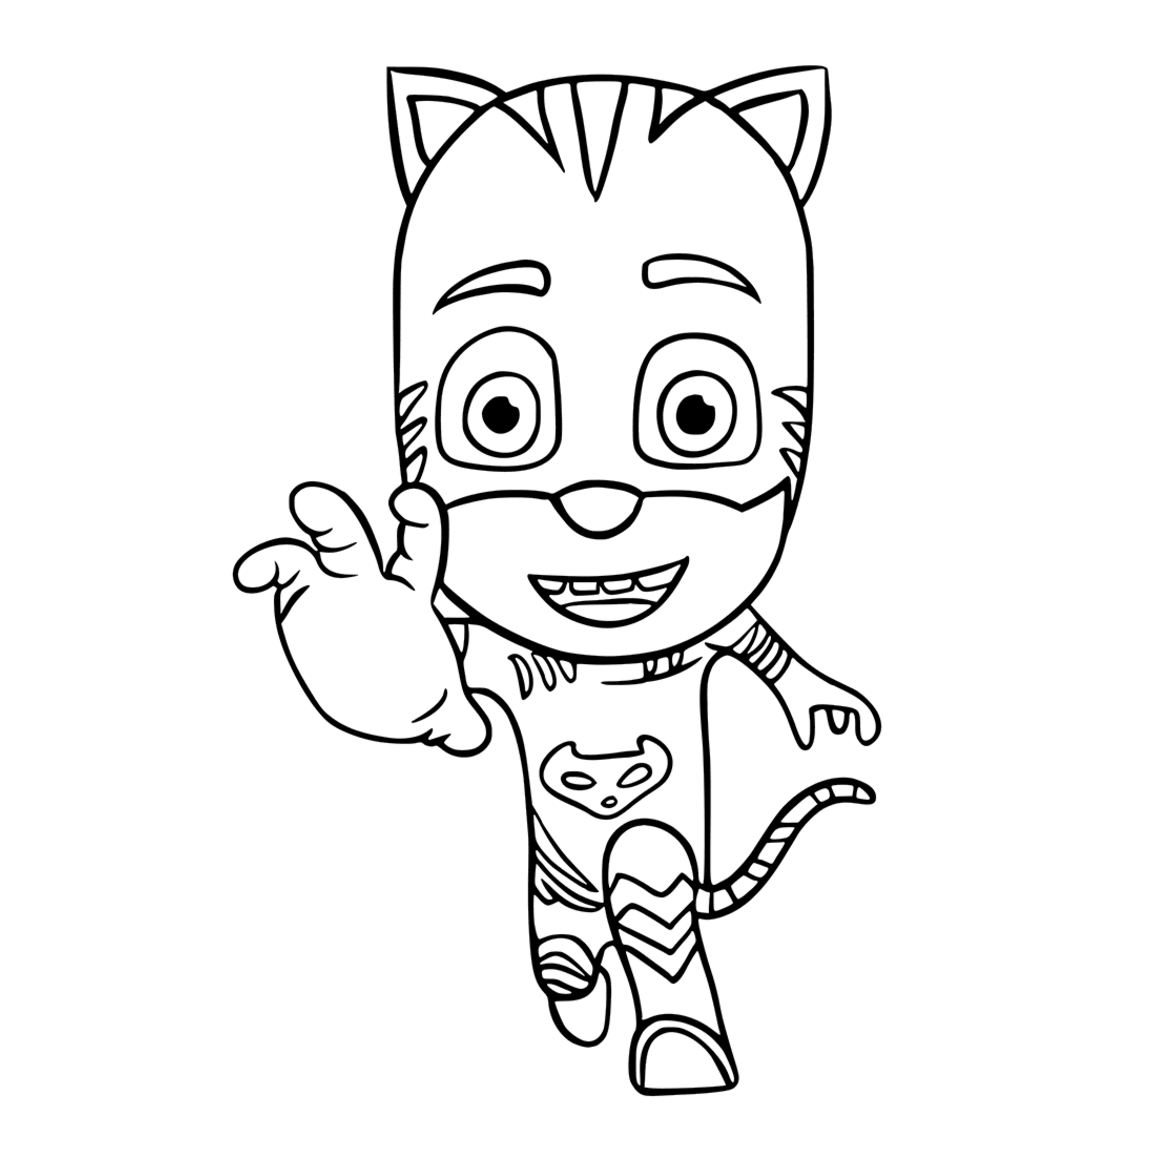 Pj masks coloring pages best coloring pages for kids for Fun coloring pages for kids